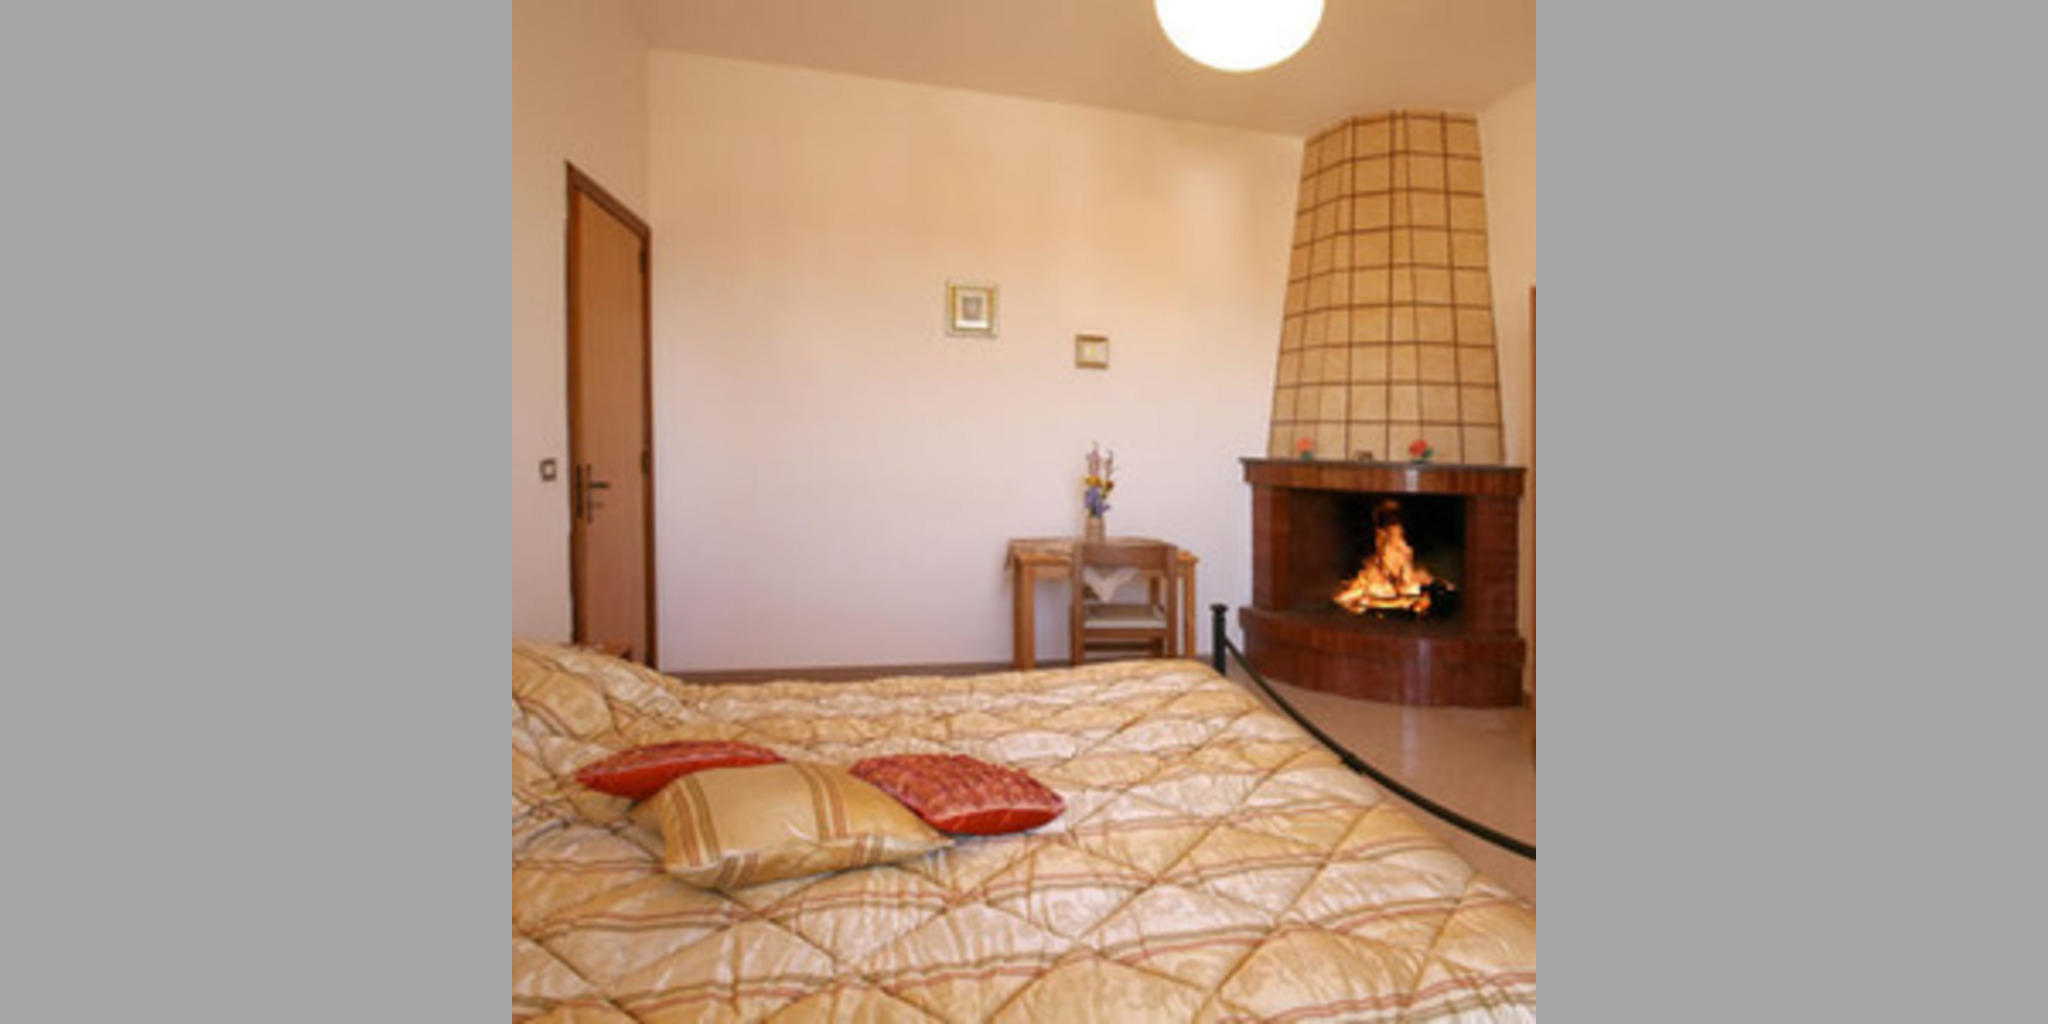 Bed & Breakfast Castellana Grotte - Itria B